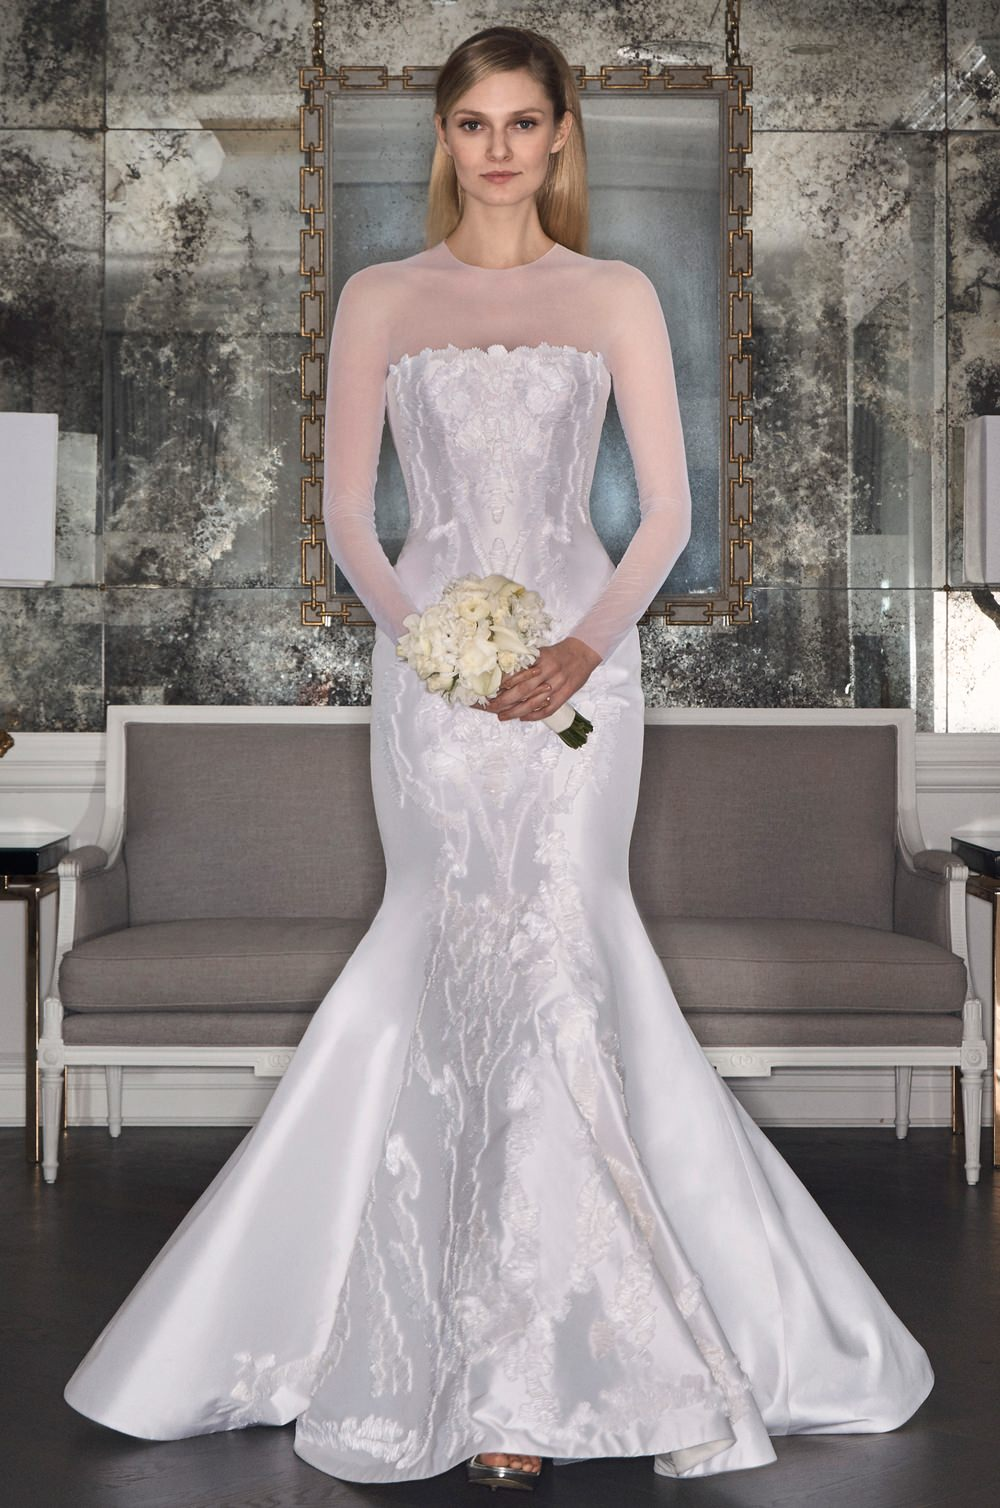 7c158a9d0c3d7 Romona Keveza RK7493 wedding dress - Browns Bride